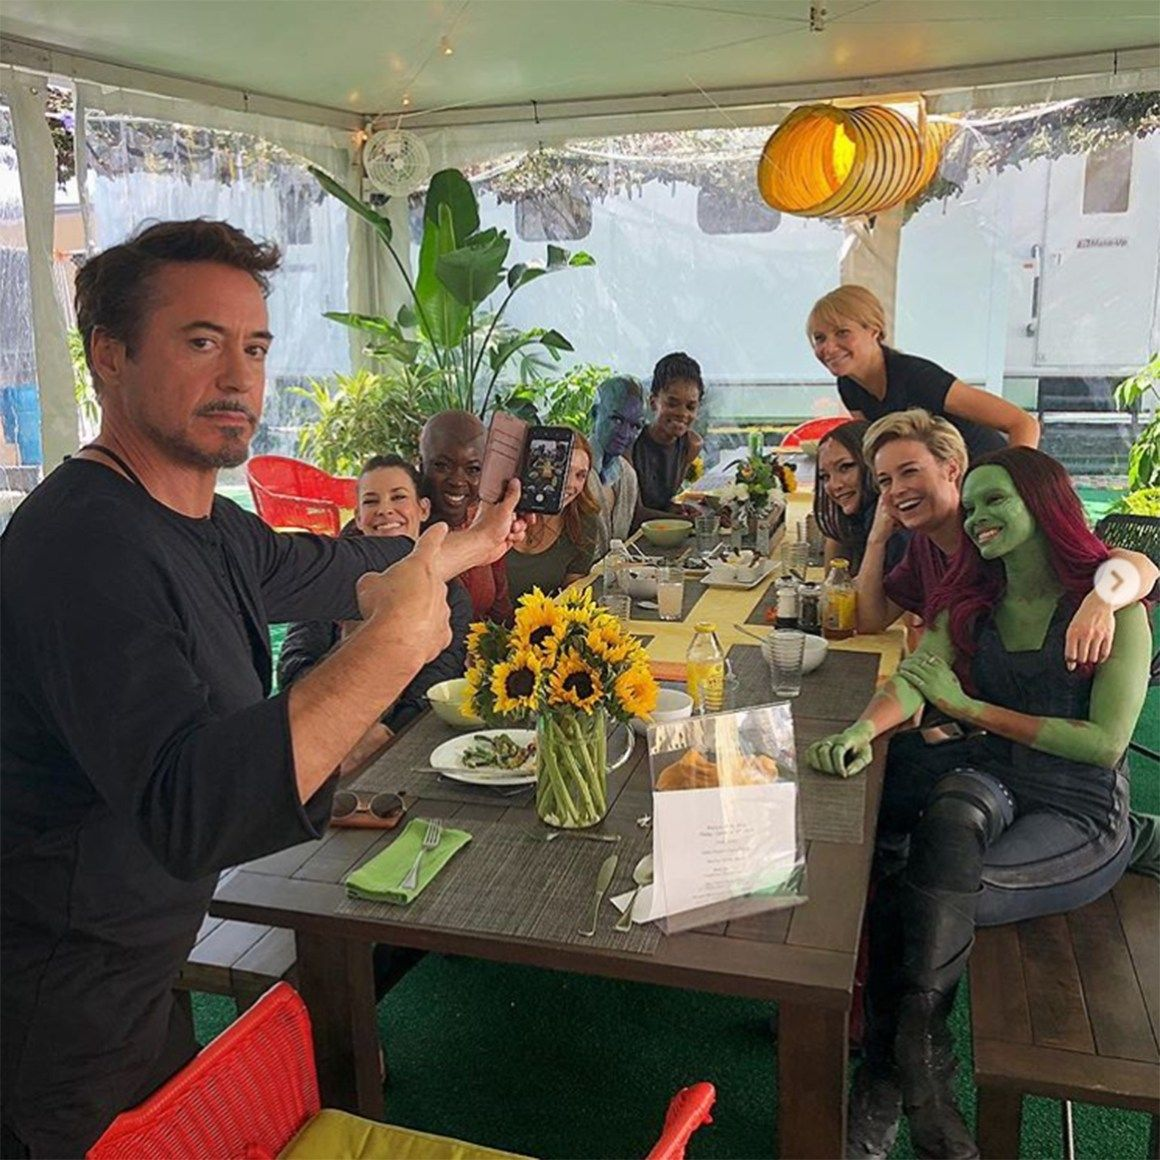 The Marvel Ban Has Finally Lifted! Avengers Actors Share Behind-the-Scenes Moments